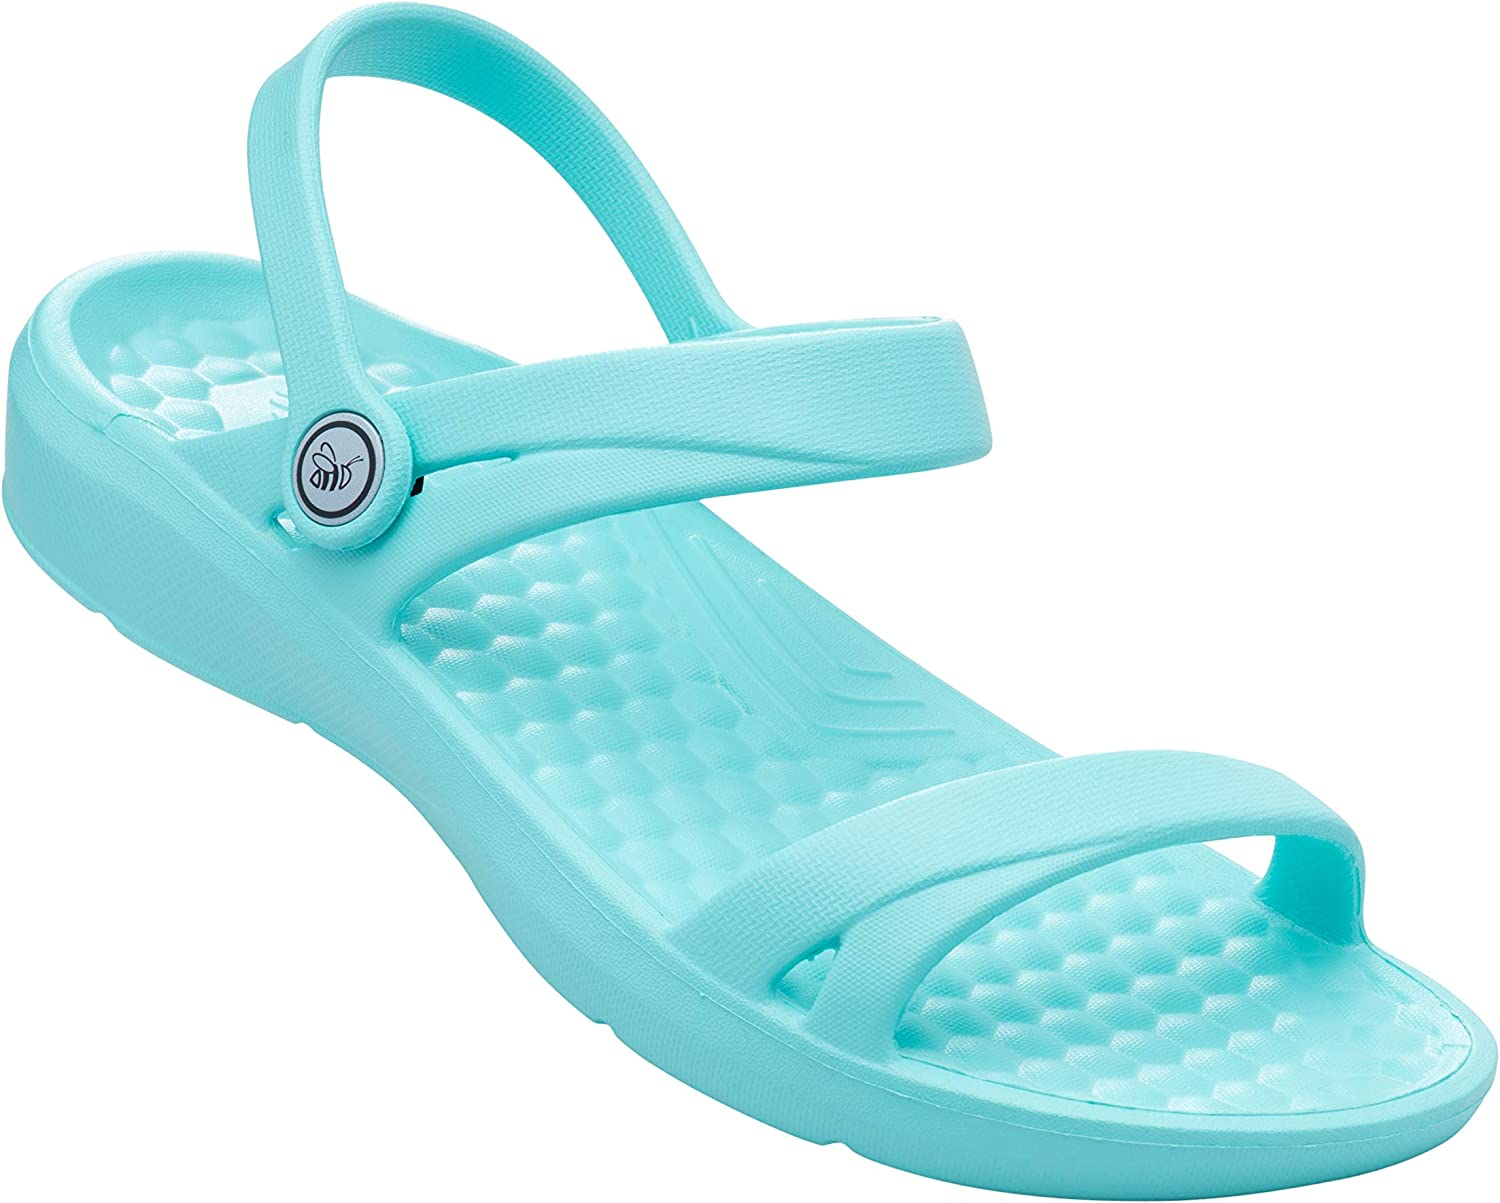 JOYBEES Women's Max 43% OFF Dance Sandal Max 65% OFF Supportive and Easy Comfortable